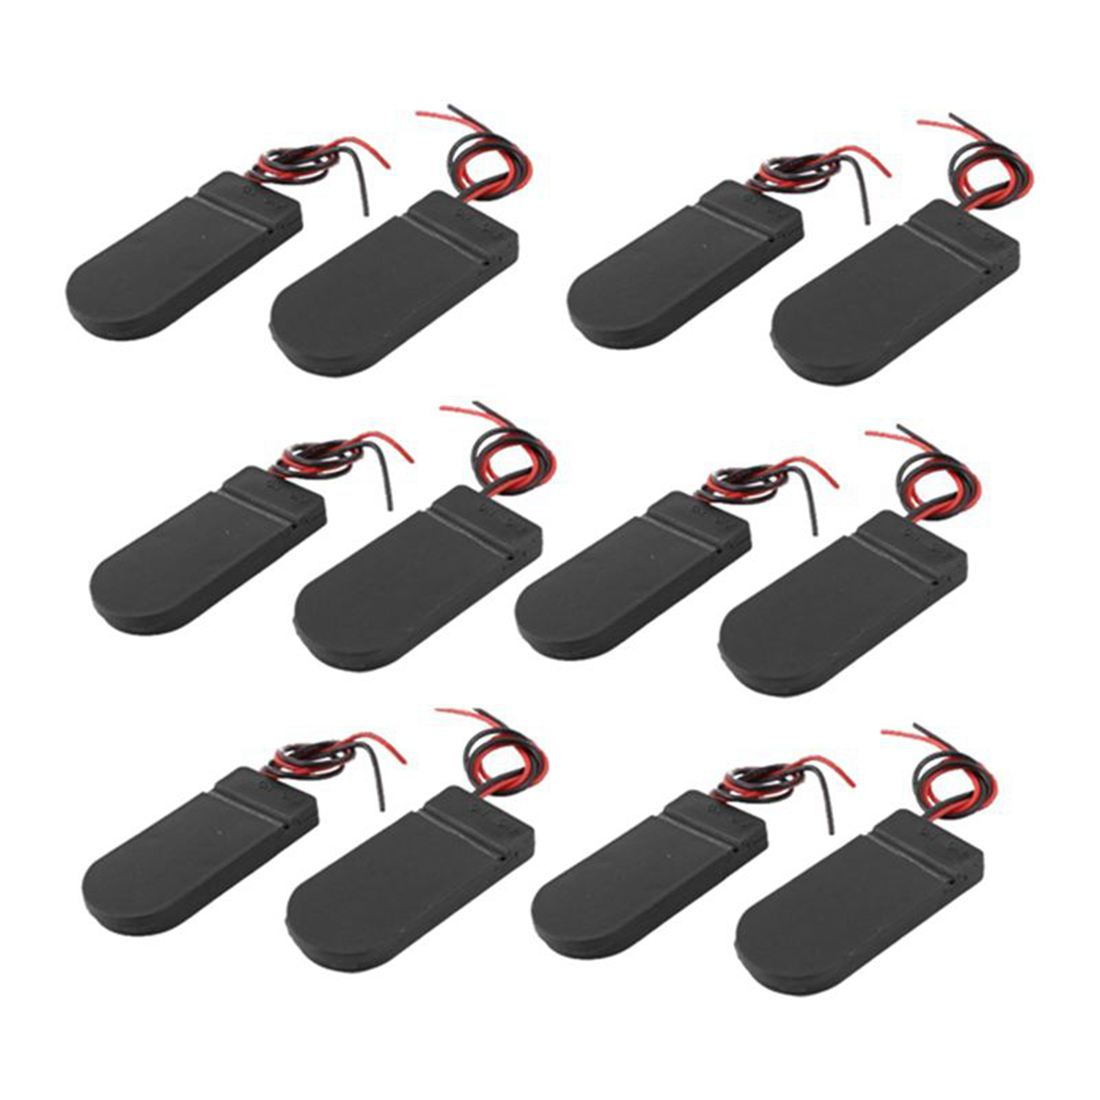 FULL-12PCS <font><b>CR2032</b></font> <font><b>Battery</b></font> Holder Plastic 2x3V Button Coin Cell <font><b>Battery</b></font> Holder Case Box <font><b>with</b></font> <font><b>Wire</b></font> Lead ON-OFF Switch (Black) image